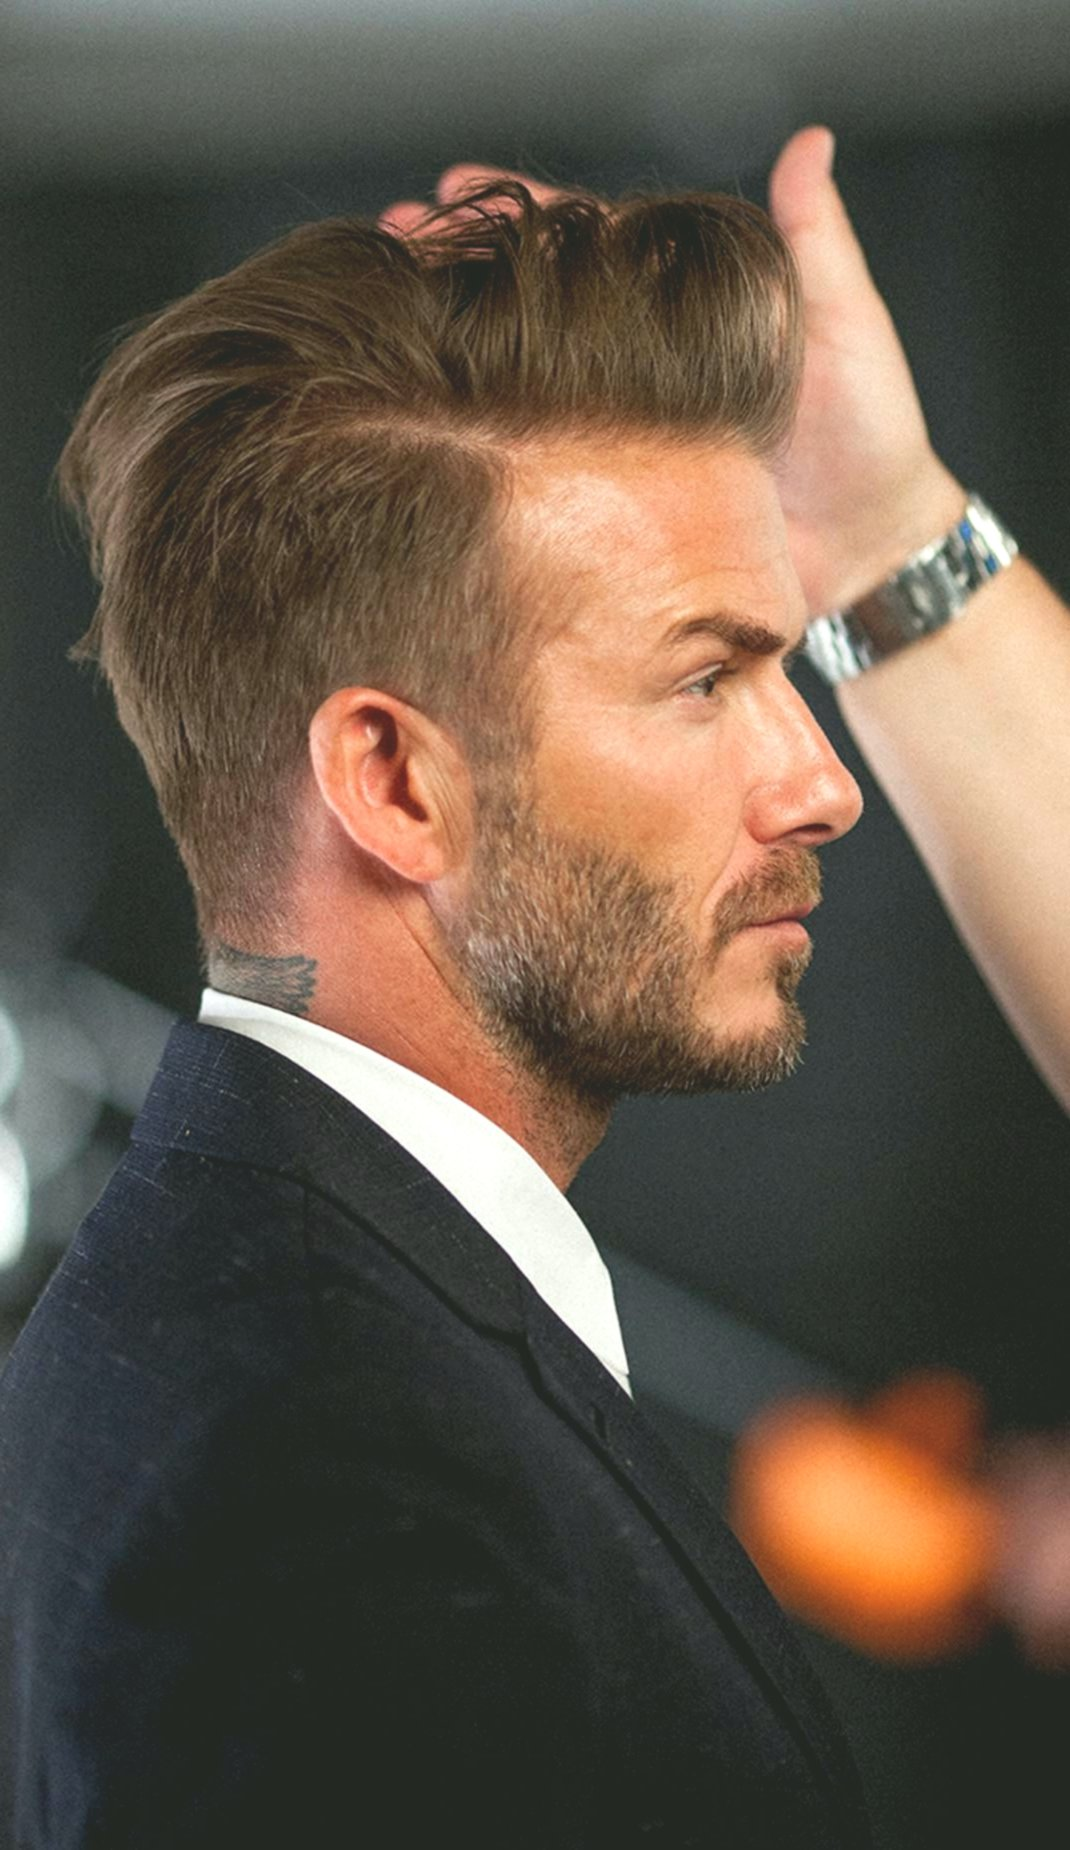 Wonderful Breathtaking Men's Hairstyle Long Image-Excellent Men's Hairstyle Long Portrait